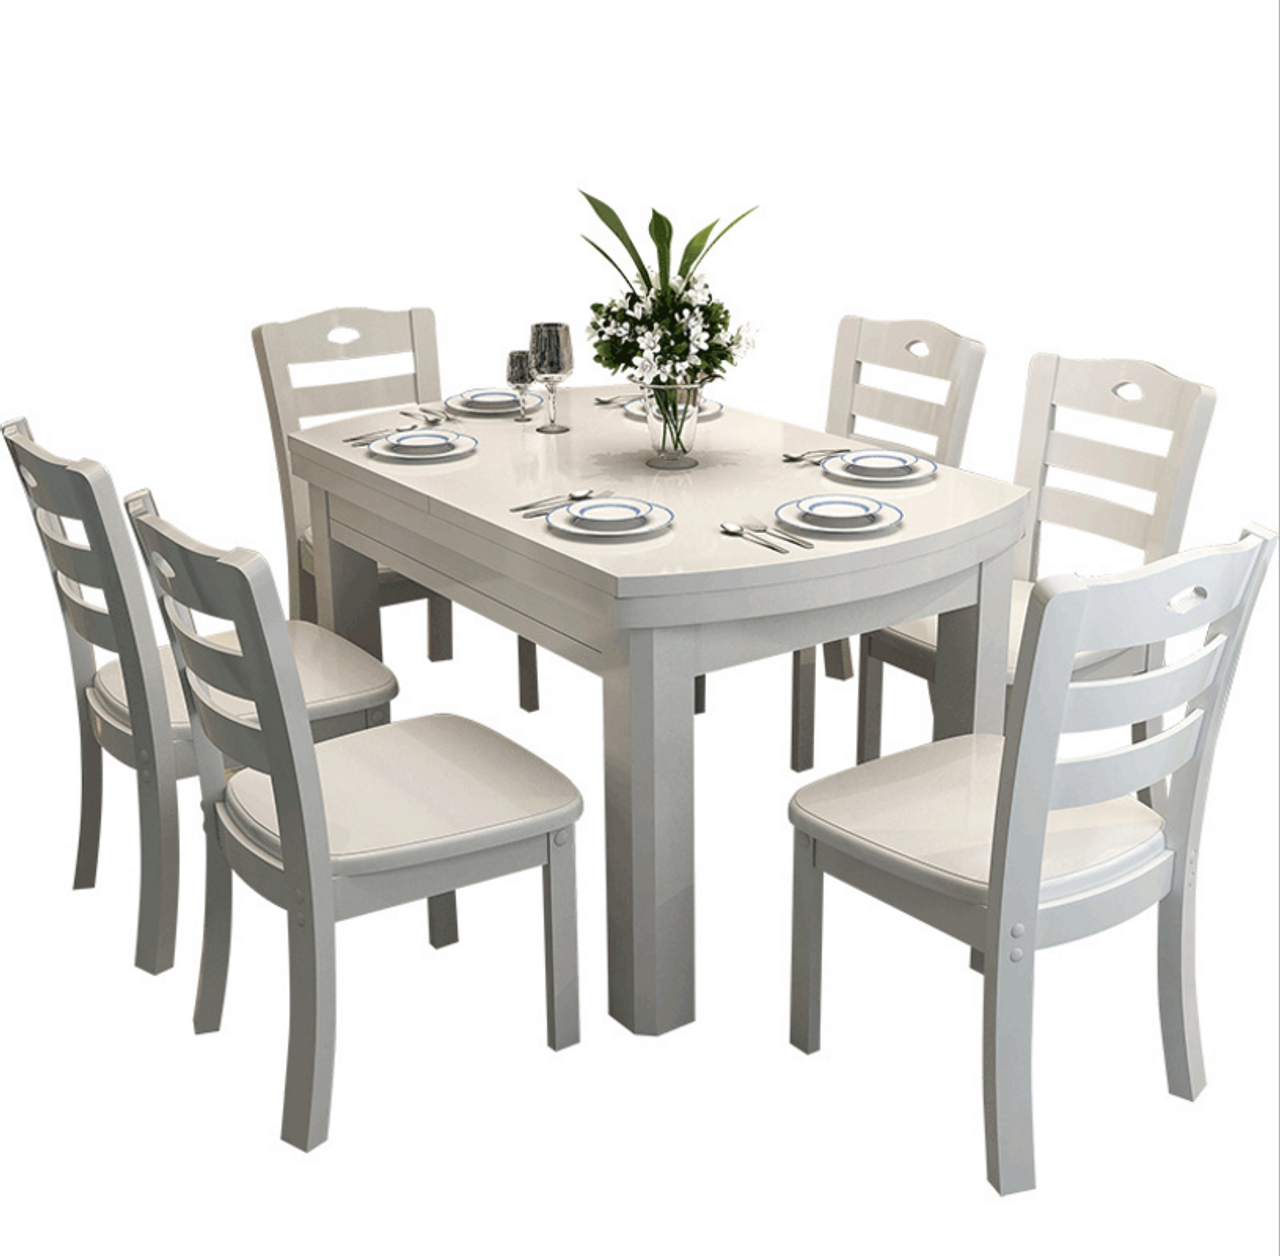 Wodden Dining 1 Table And 6 Chairs Warehouse Direct Bargain